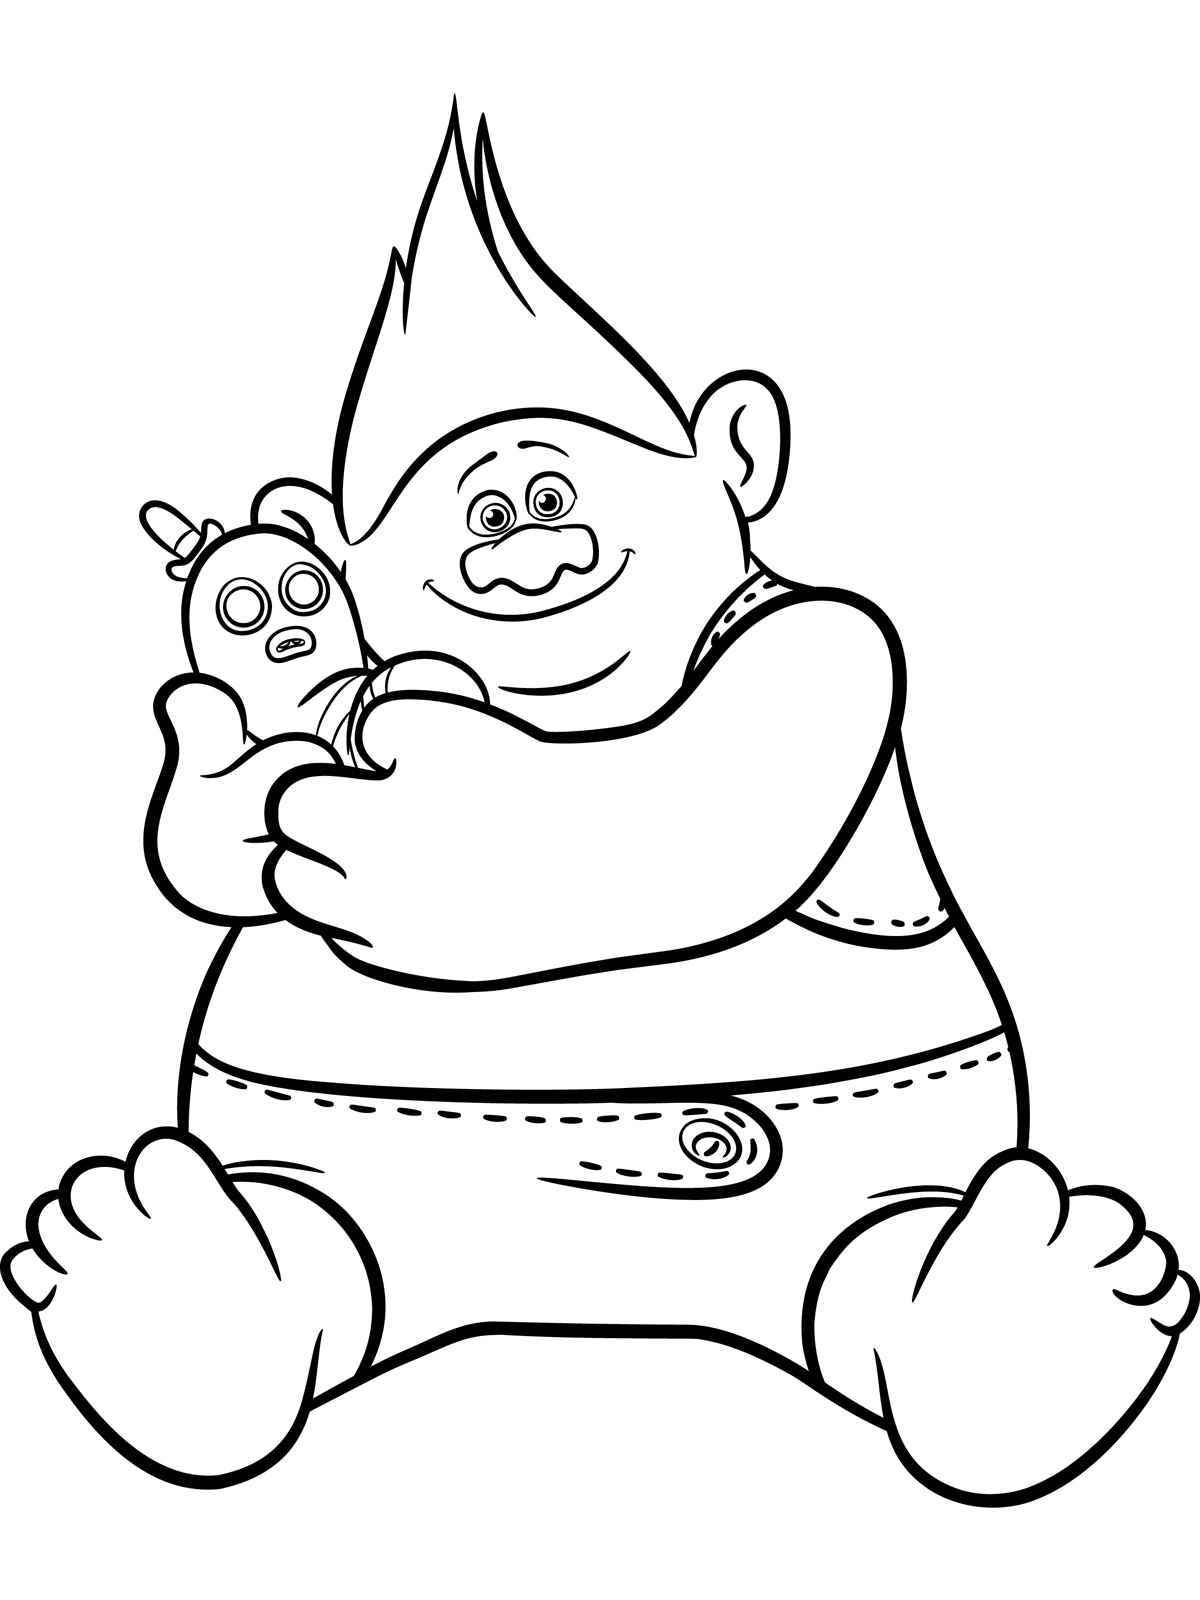 trolls coloring pages - Coloring Pages To Print